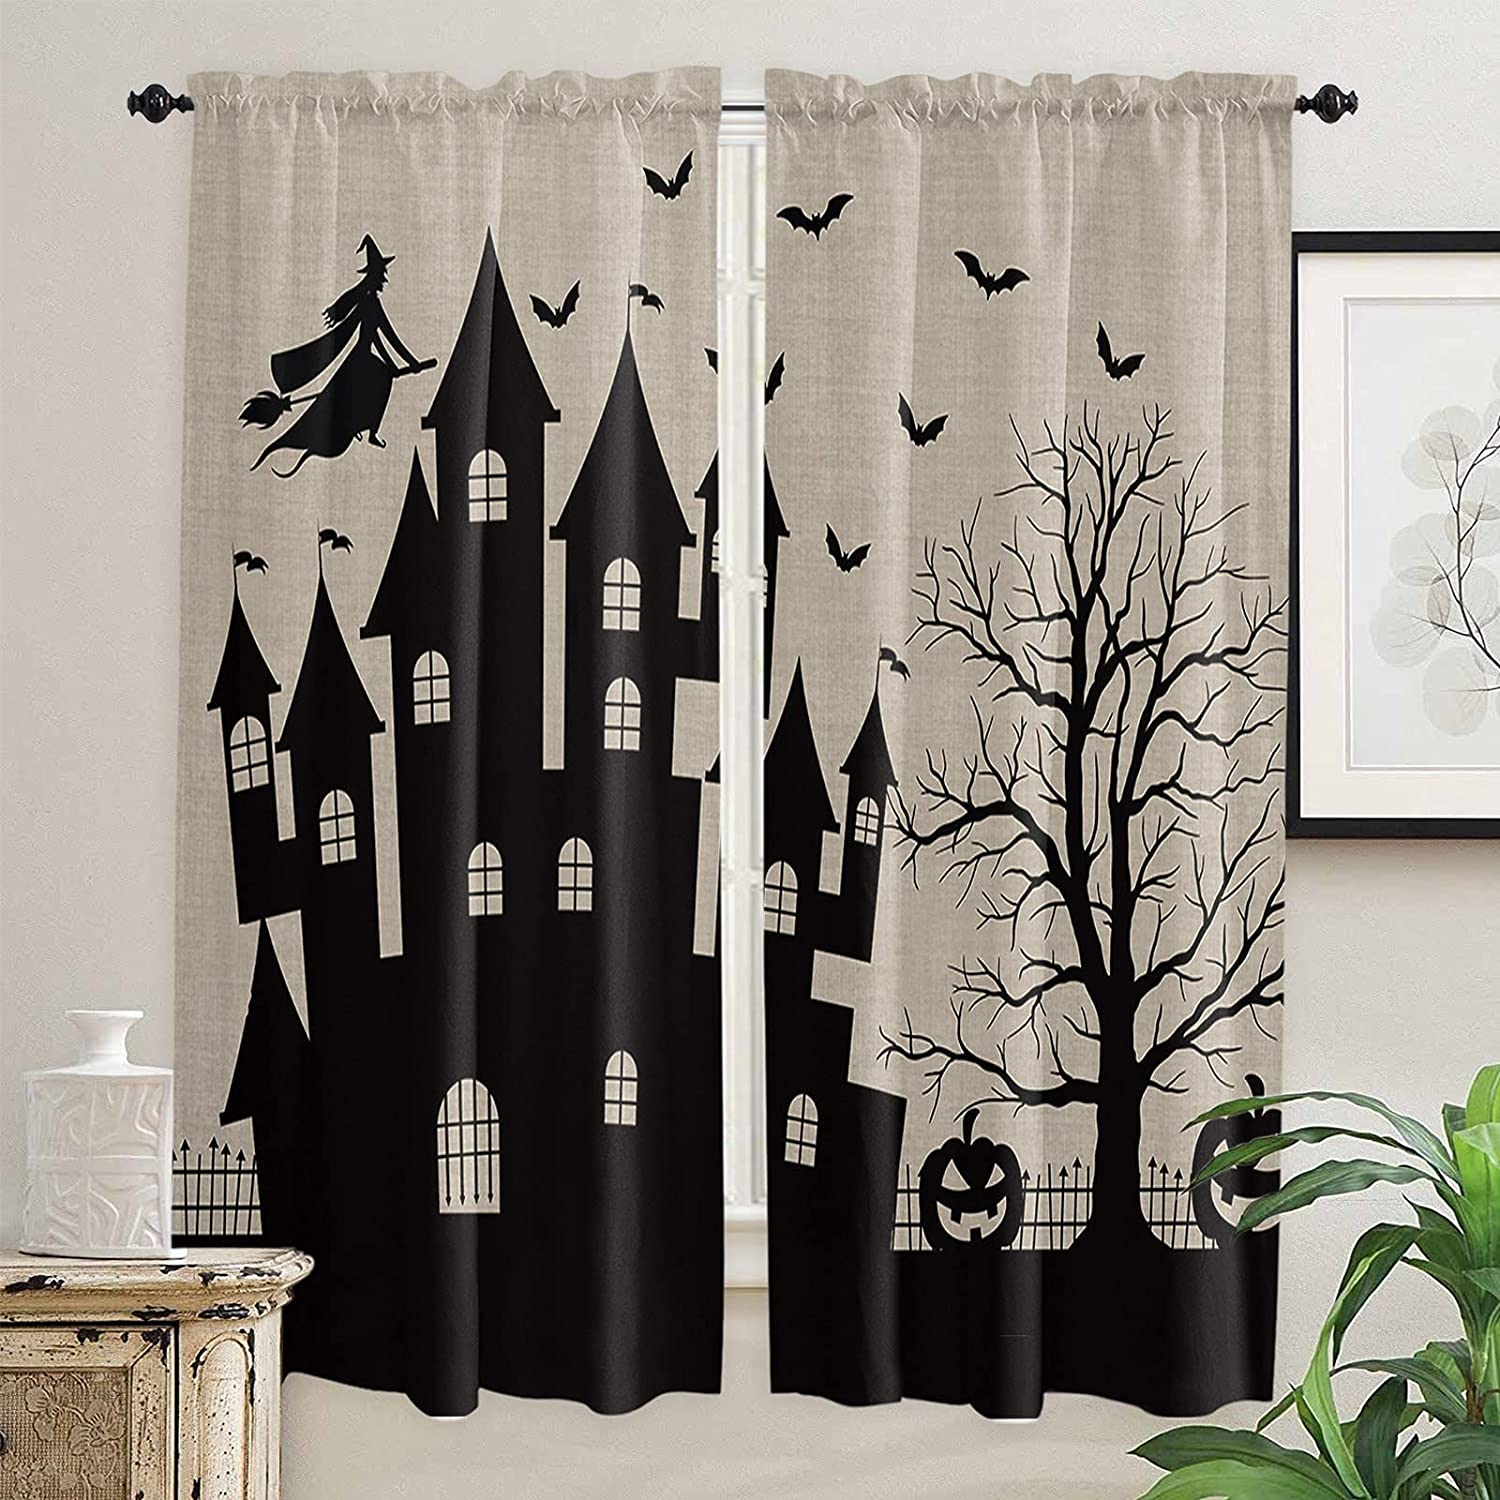 Dark Halloween Theme Kitchen Curtains for 72 Length Inch Mail order OFFicial Windows